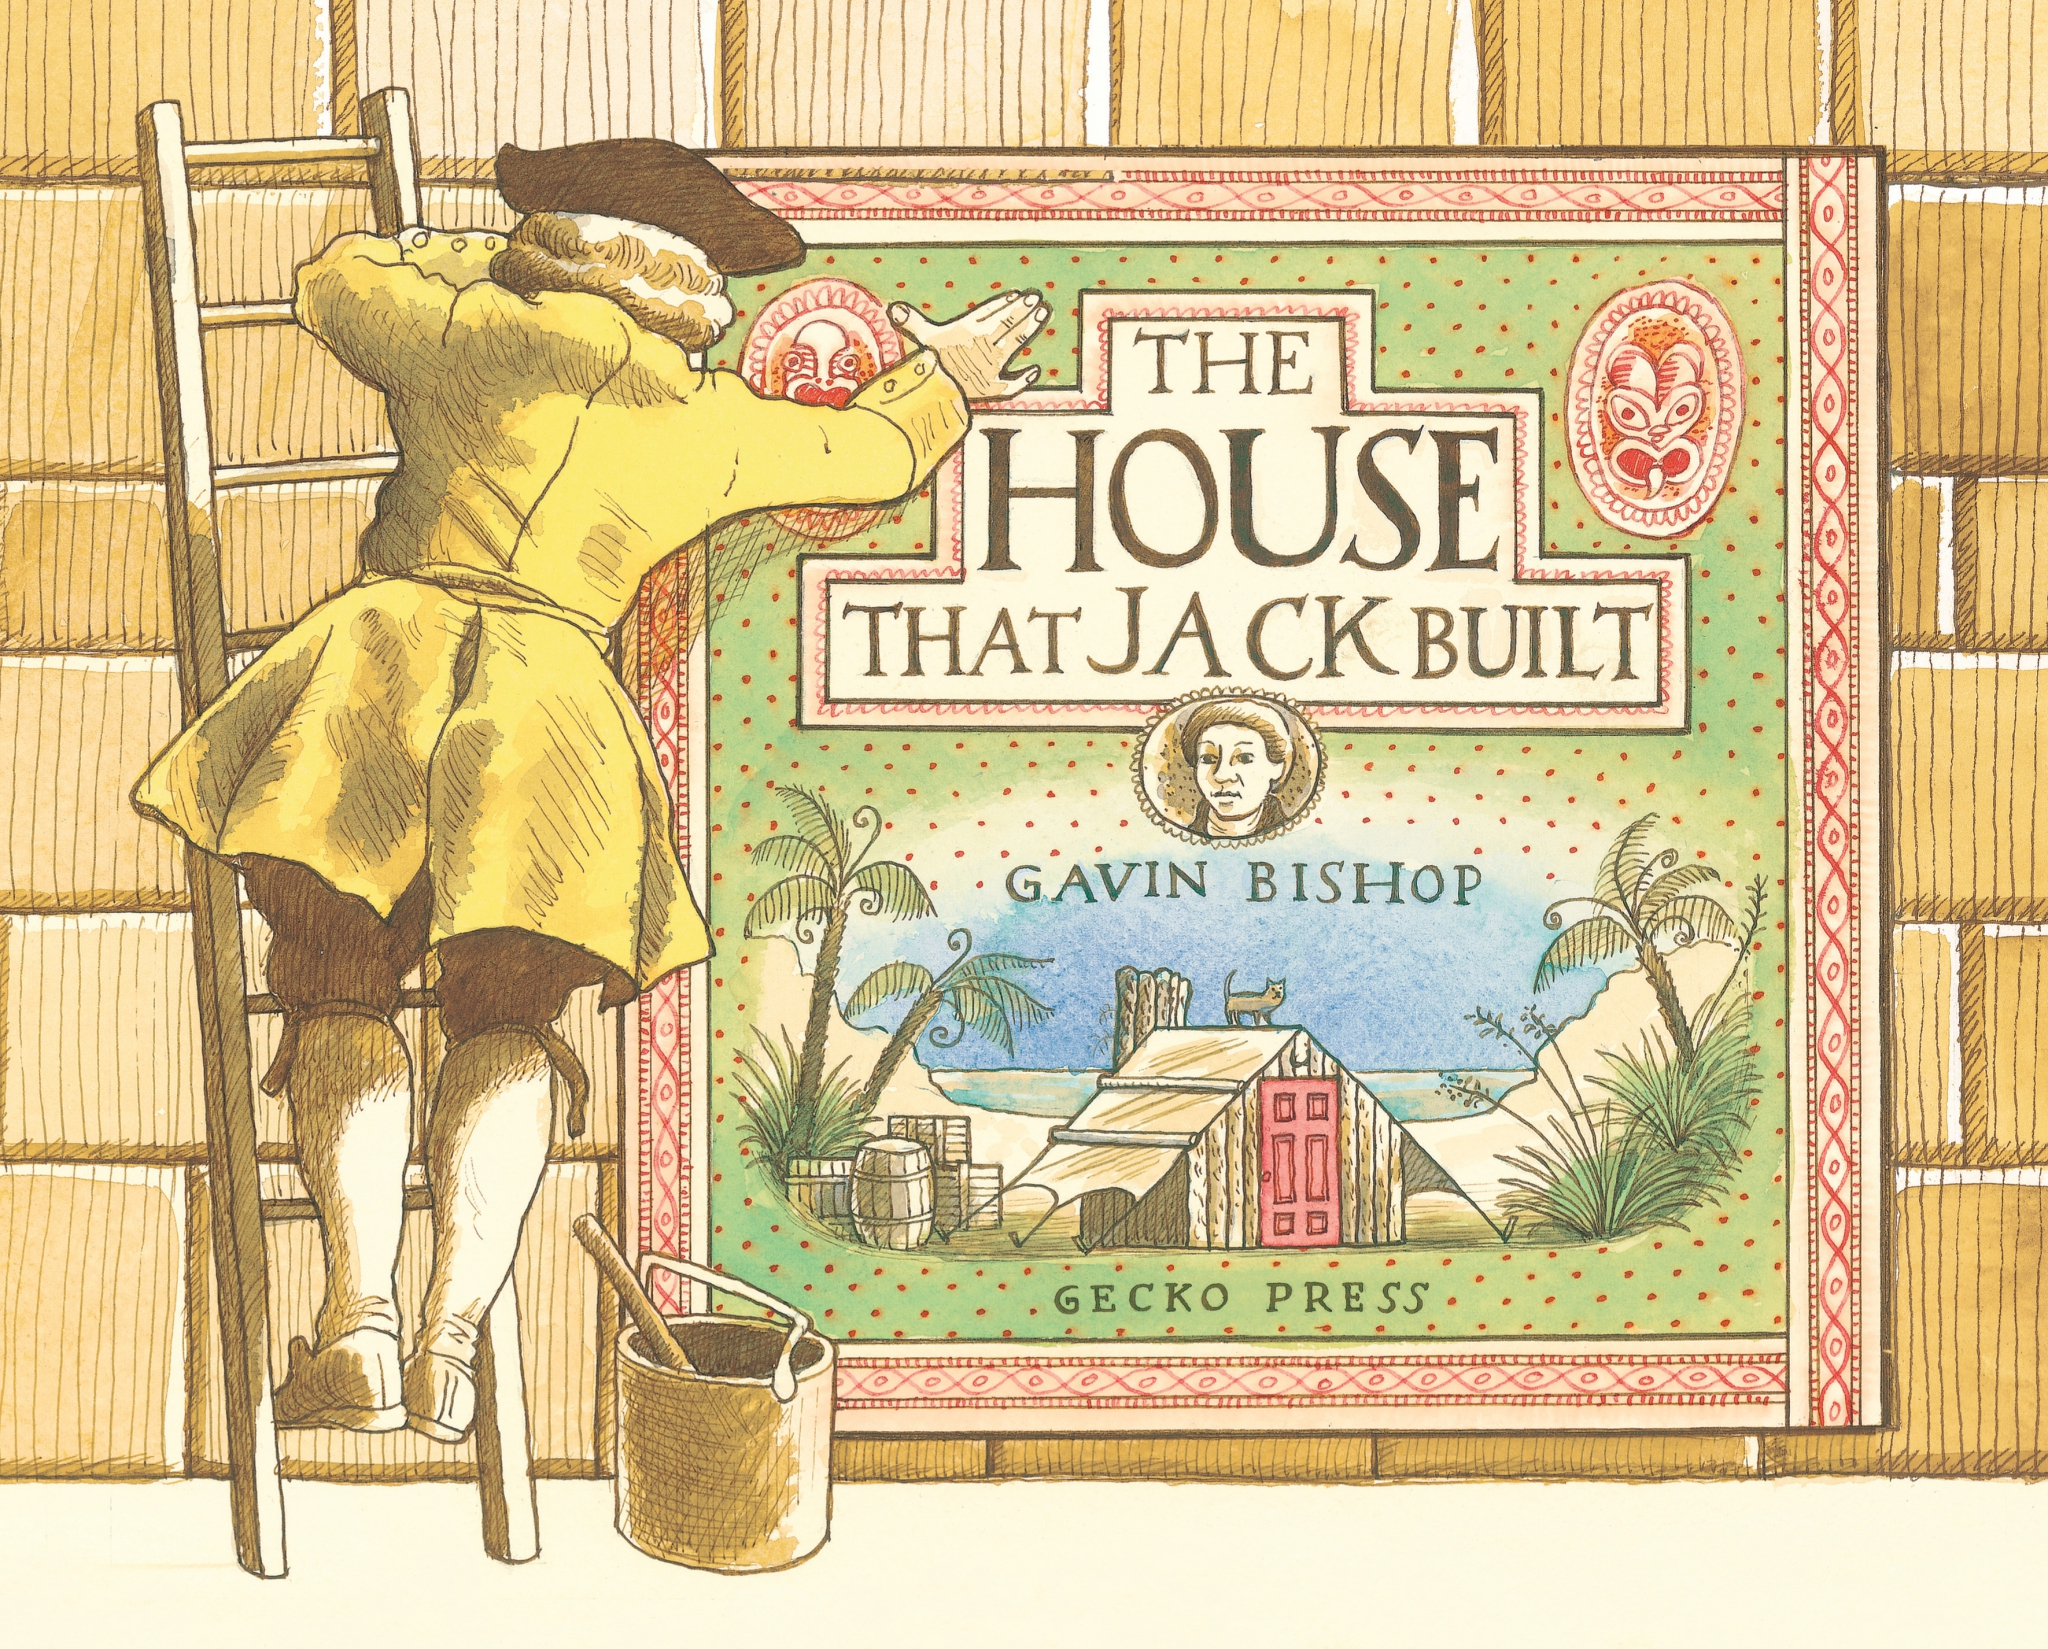 The house that Jack built book, Gavin Bishop, picture book for kids, nursery rhyme